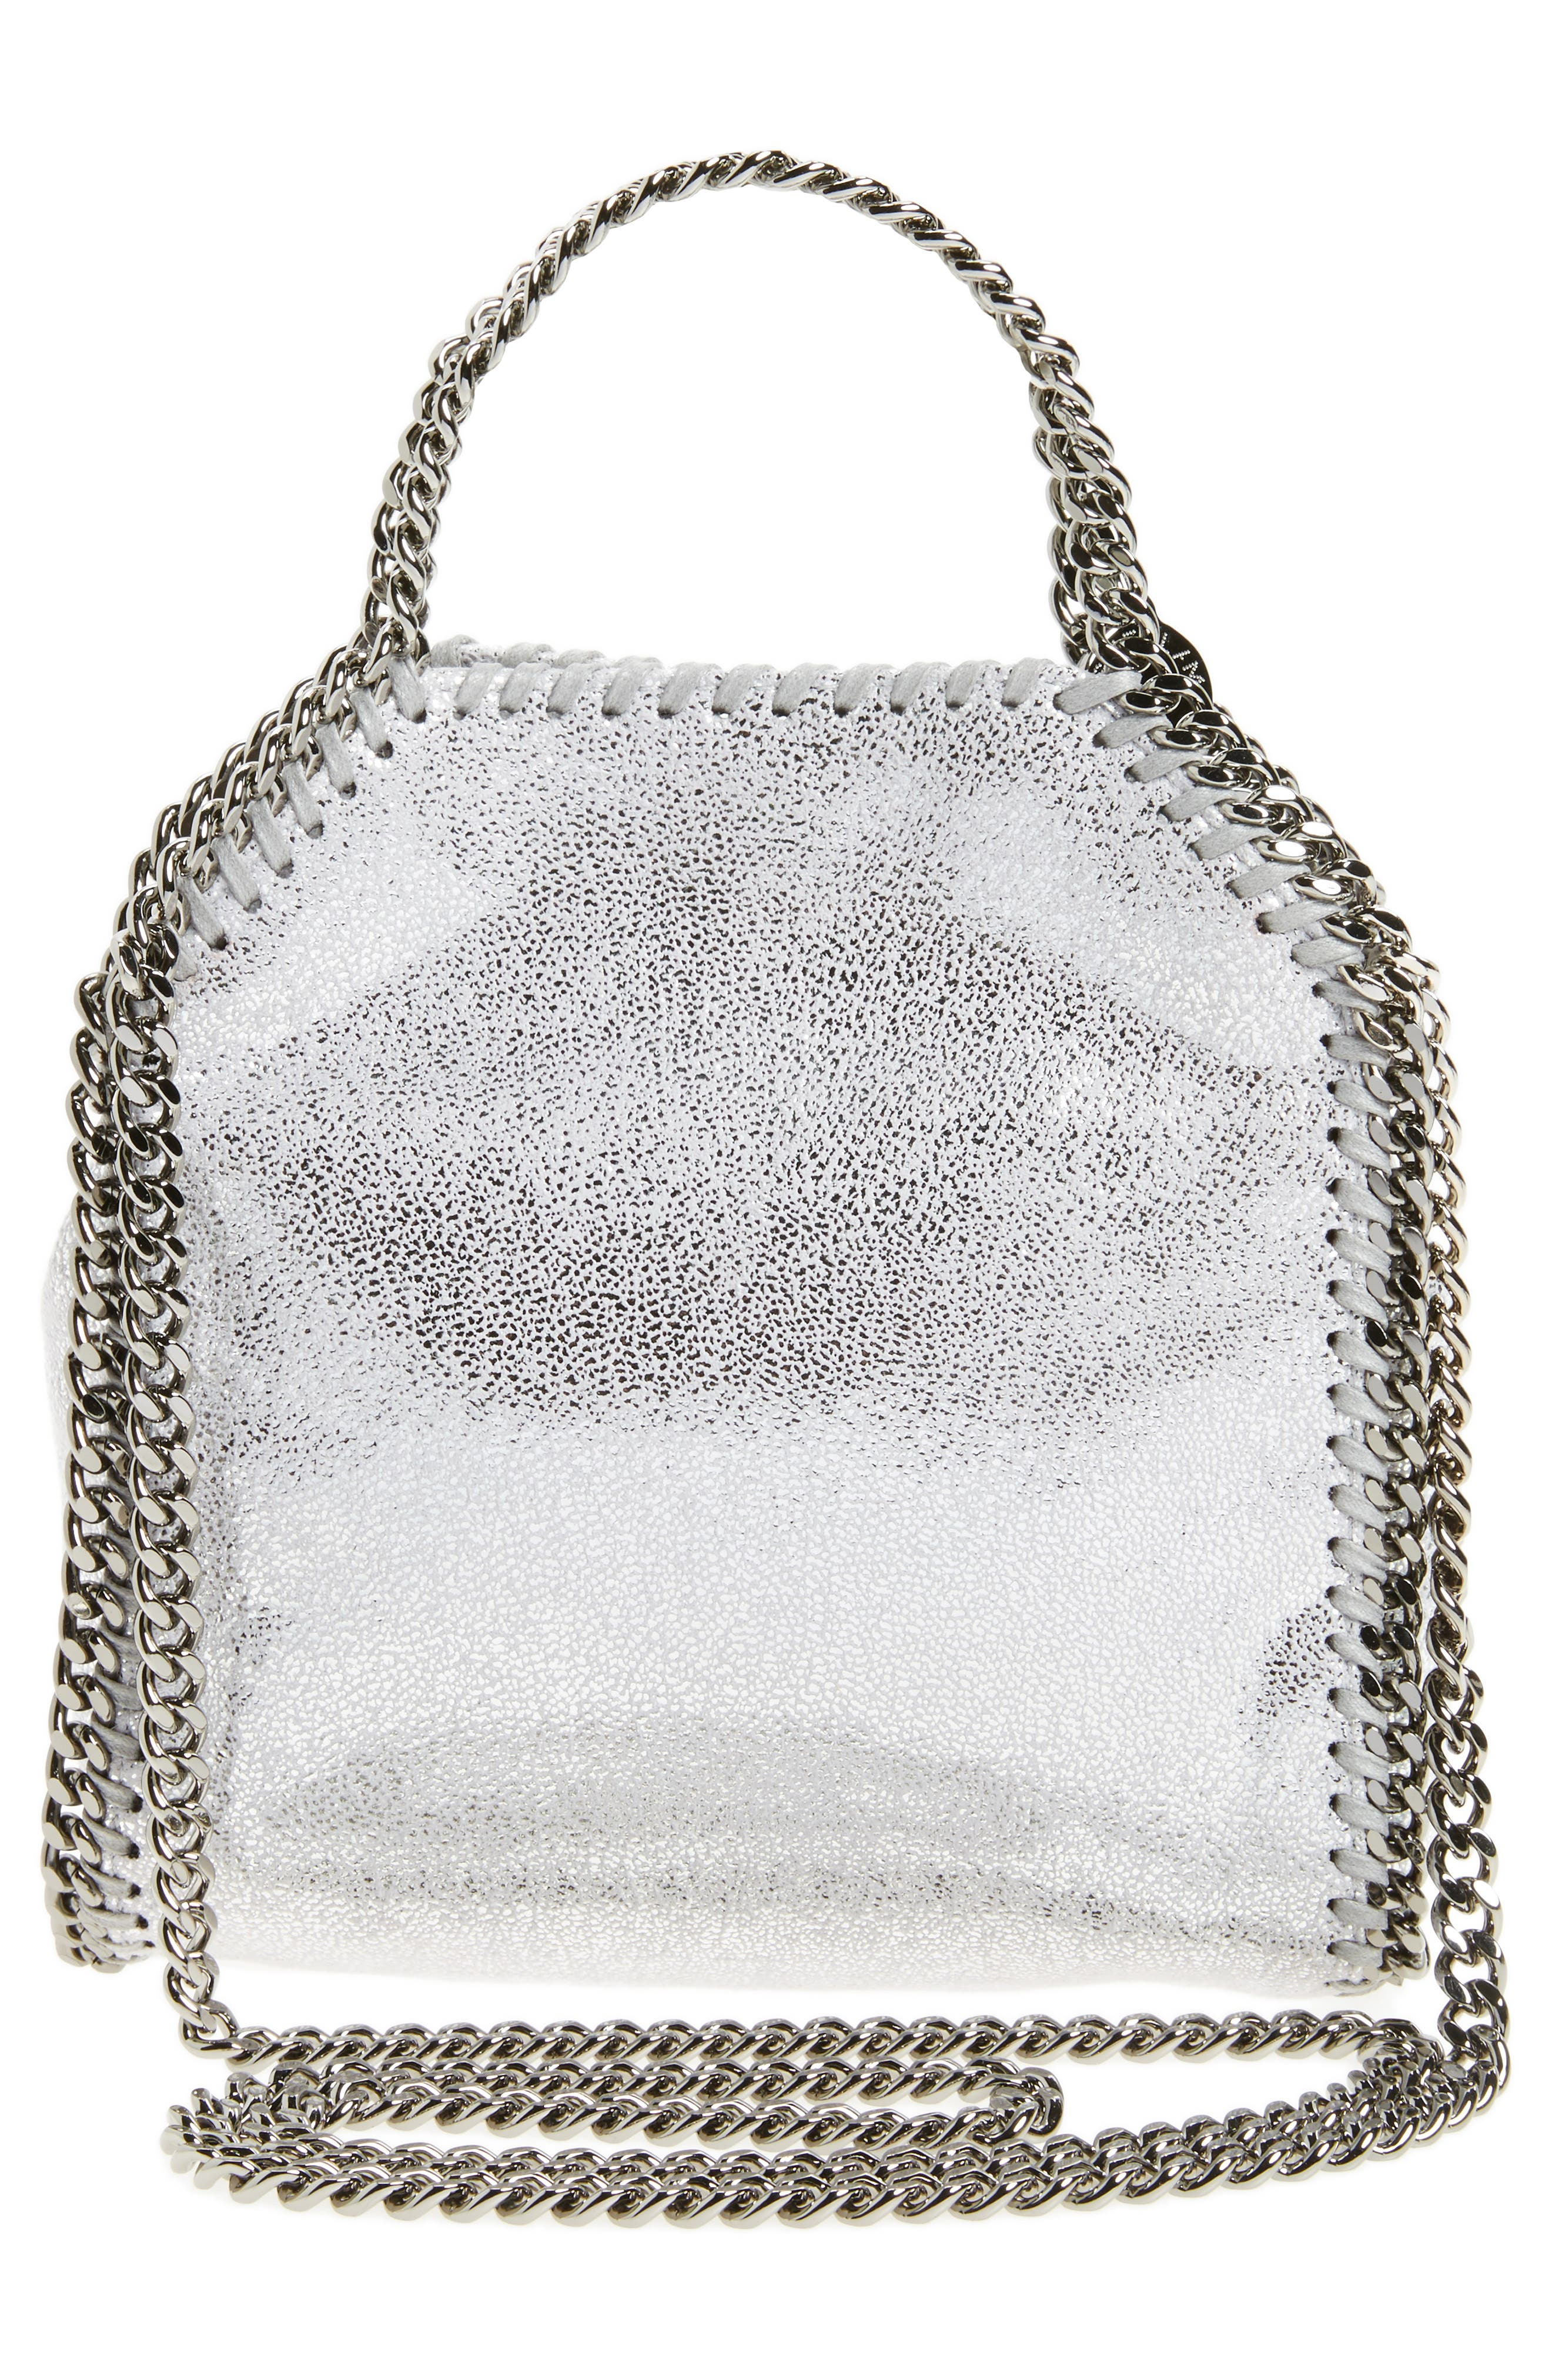 'Tiny Falabella' Metallic Faux Leather Crossbody Bag,                             Alternate thumbnail 2, color,                             Silver